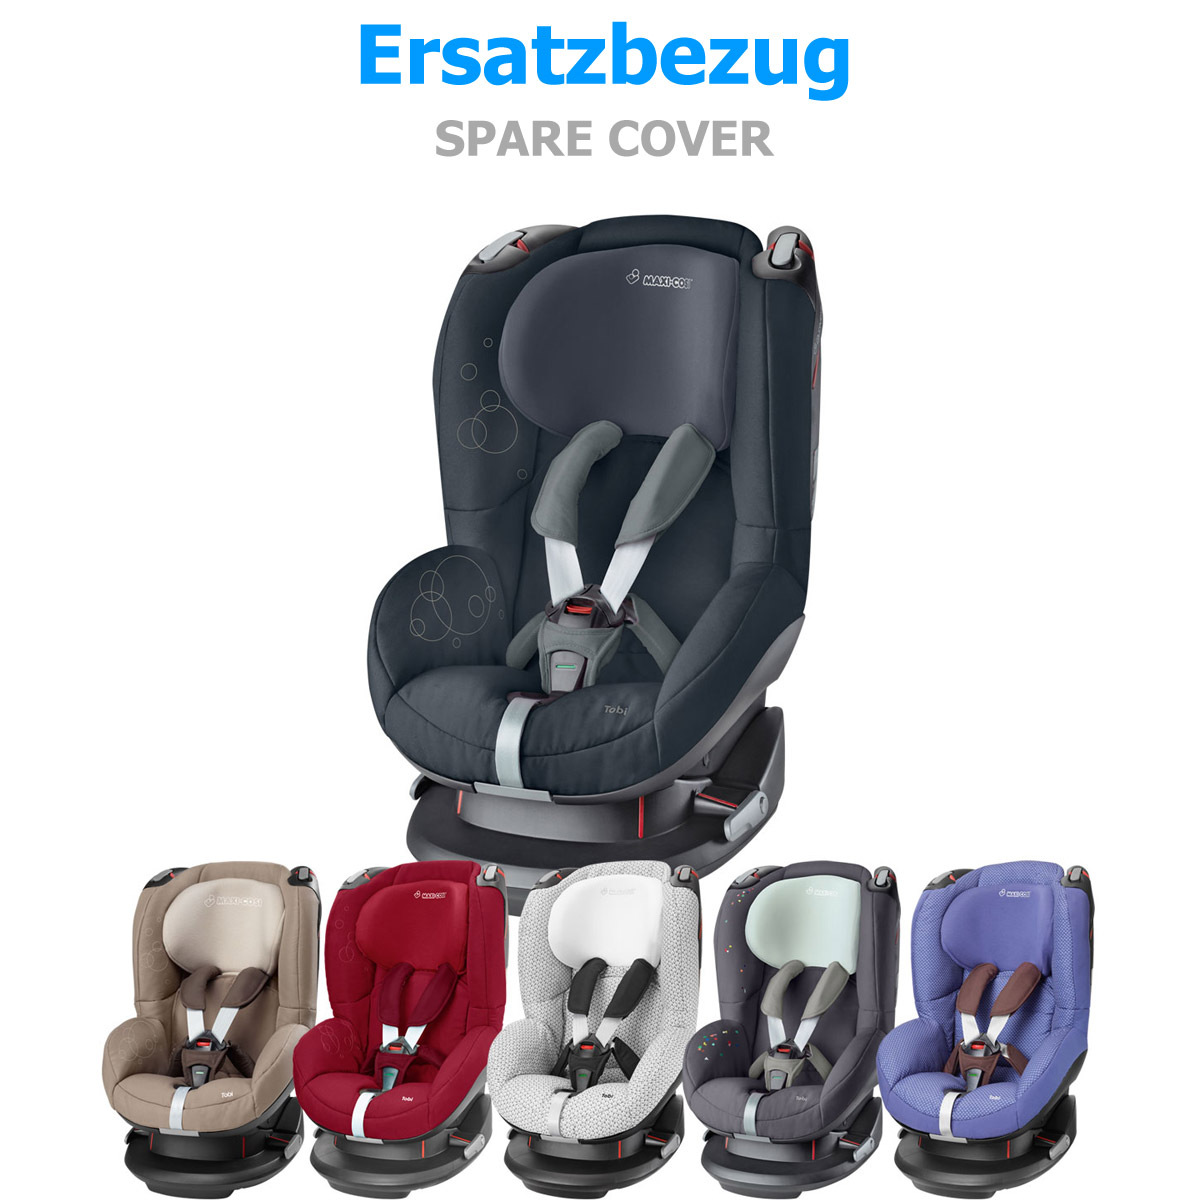 maxi cosi car seat tobi design 2014 colour choice ebay. Black Bedroom Furniture Sets. Home Design Ideas